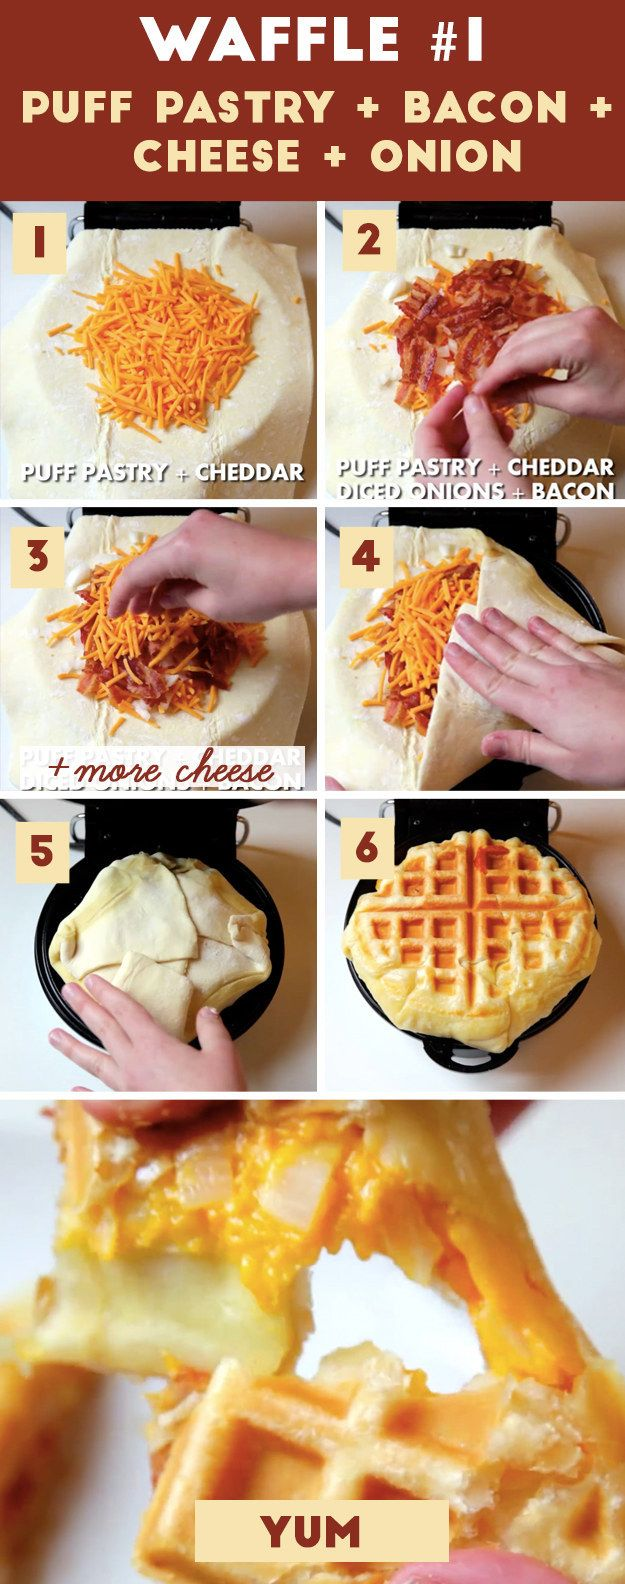 Puff Pastry + Bacon + Cheese + Onion = waffle perfection